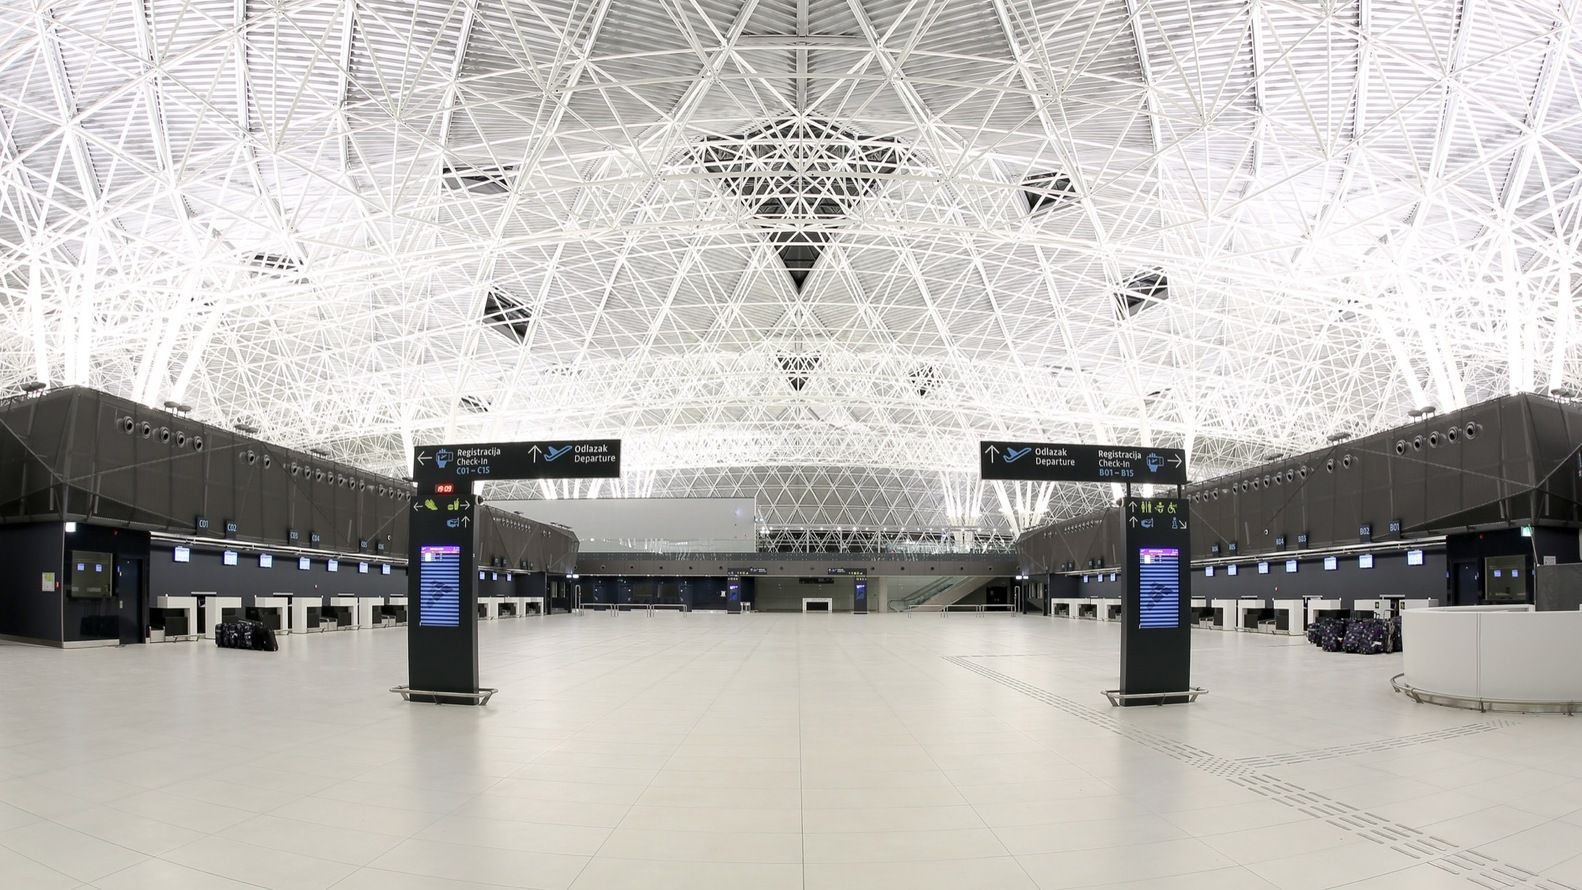 Gallery Of Zagreb Airport Kincl Neidhardt Institut Igh 8 Zagreb Airport Architecture Today